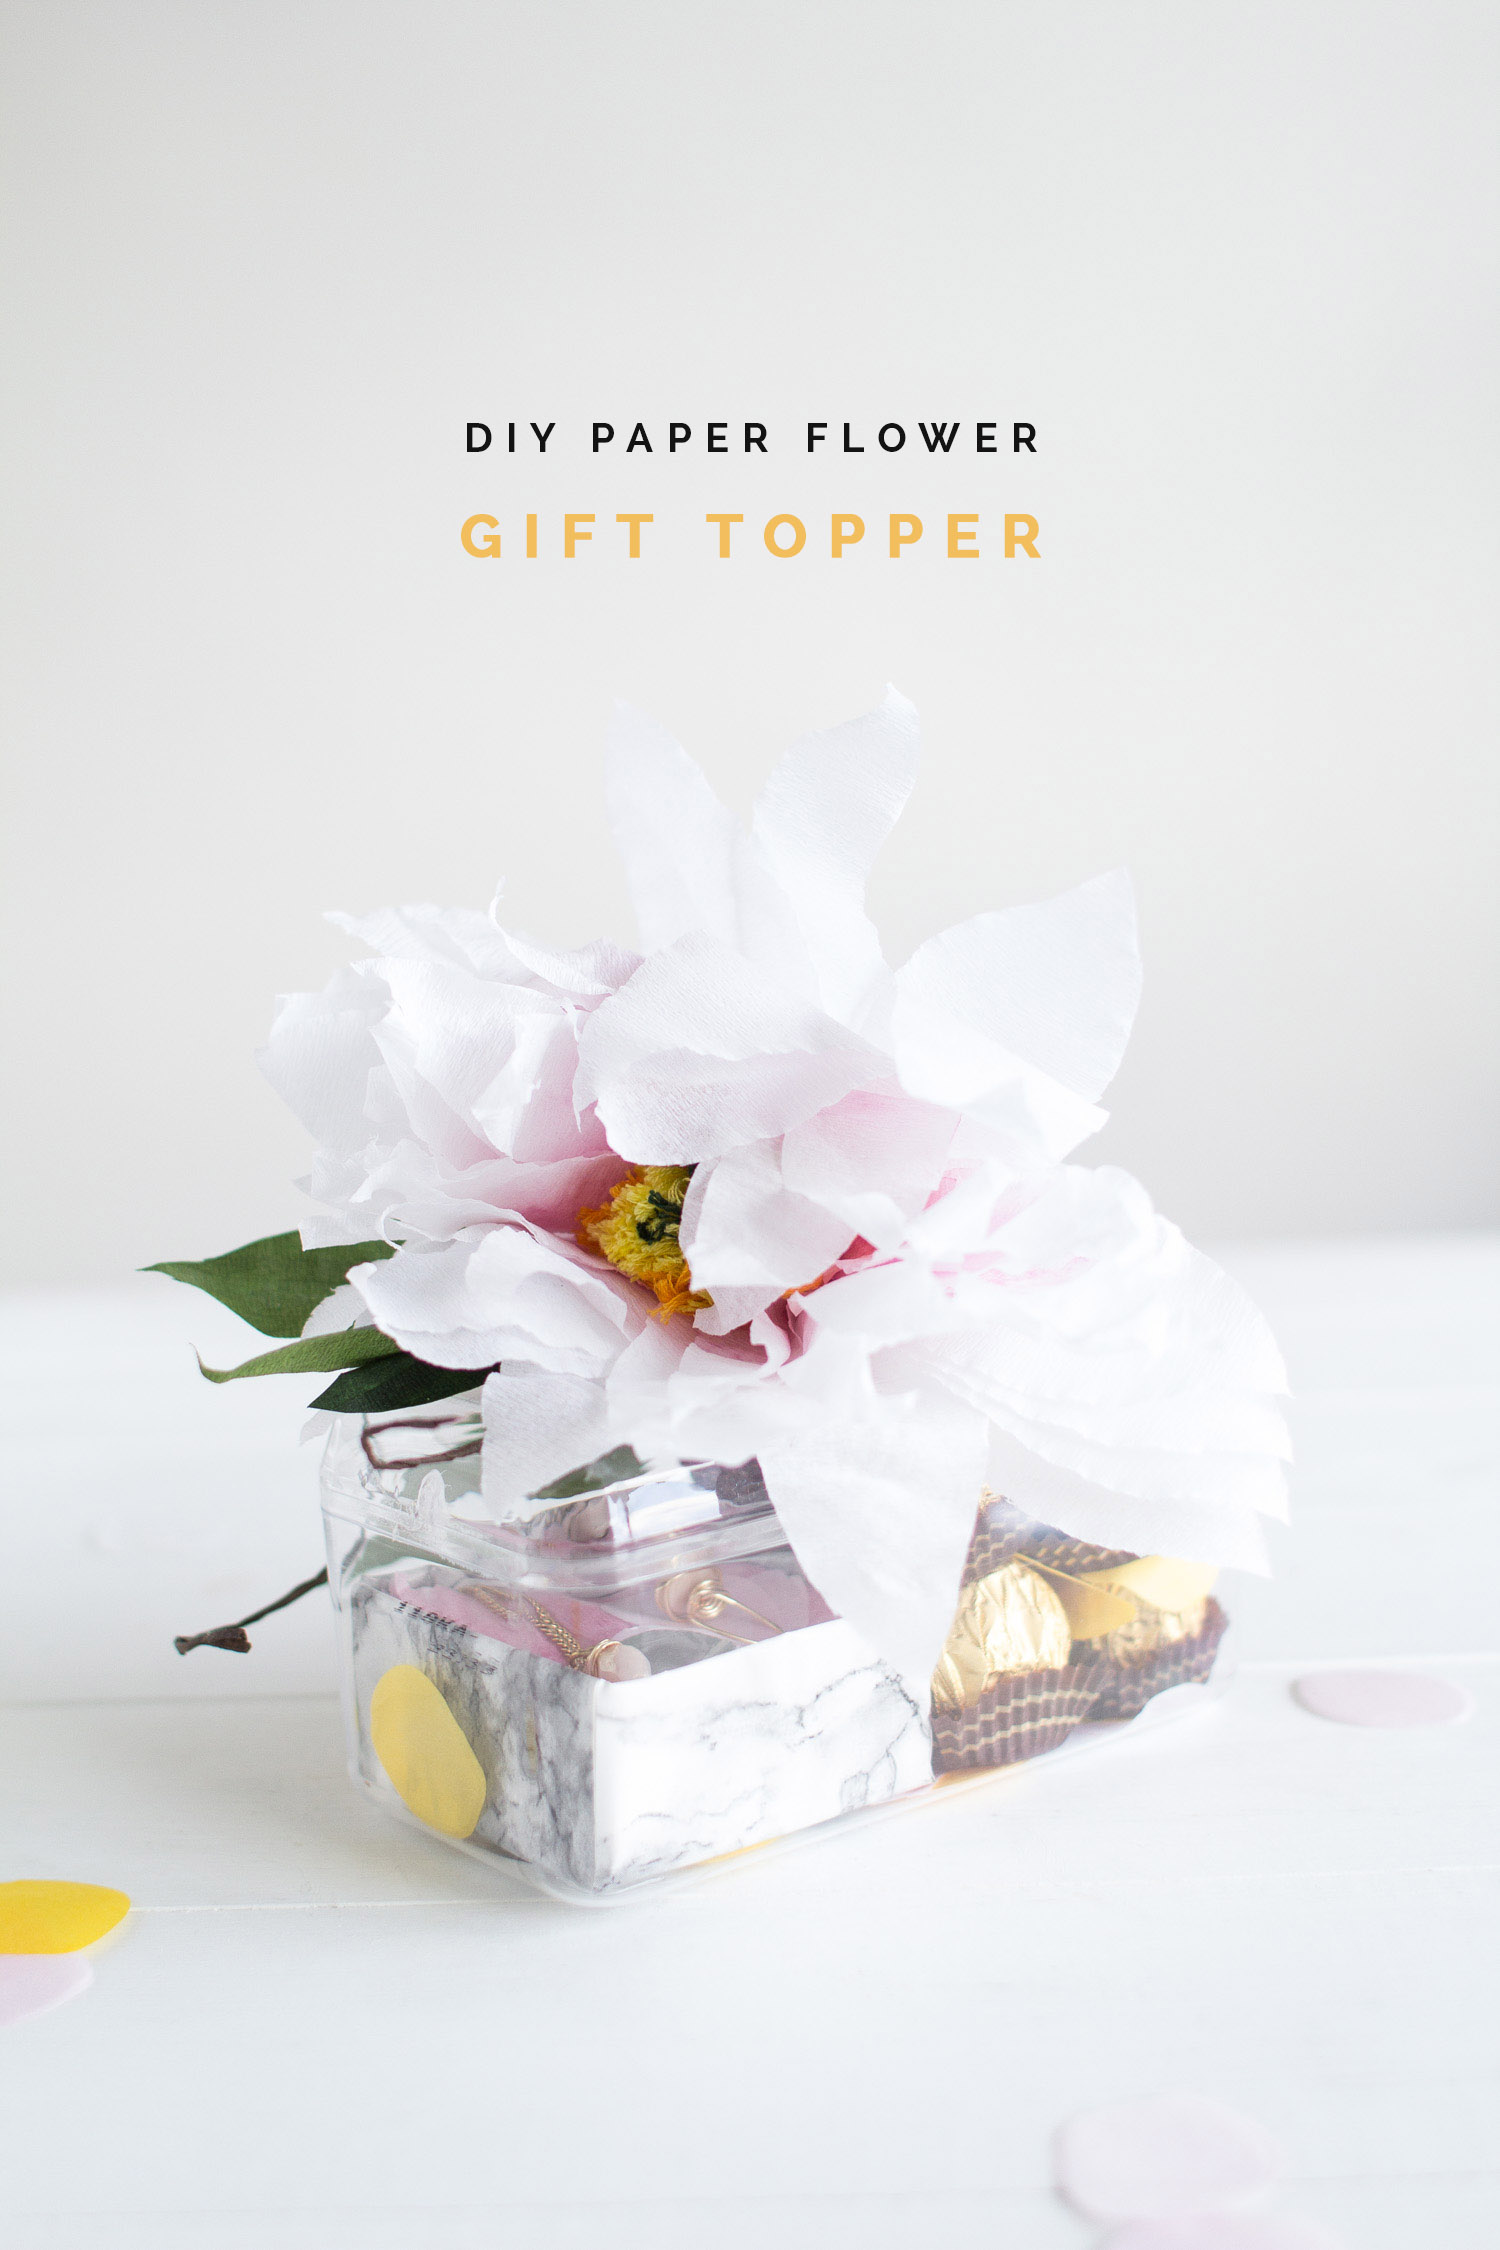 diy paper flower gift topper